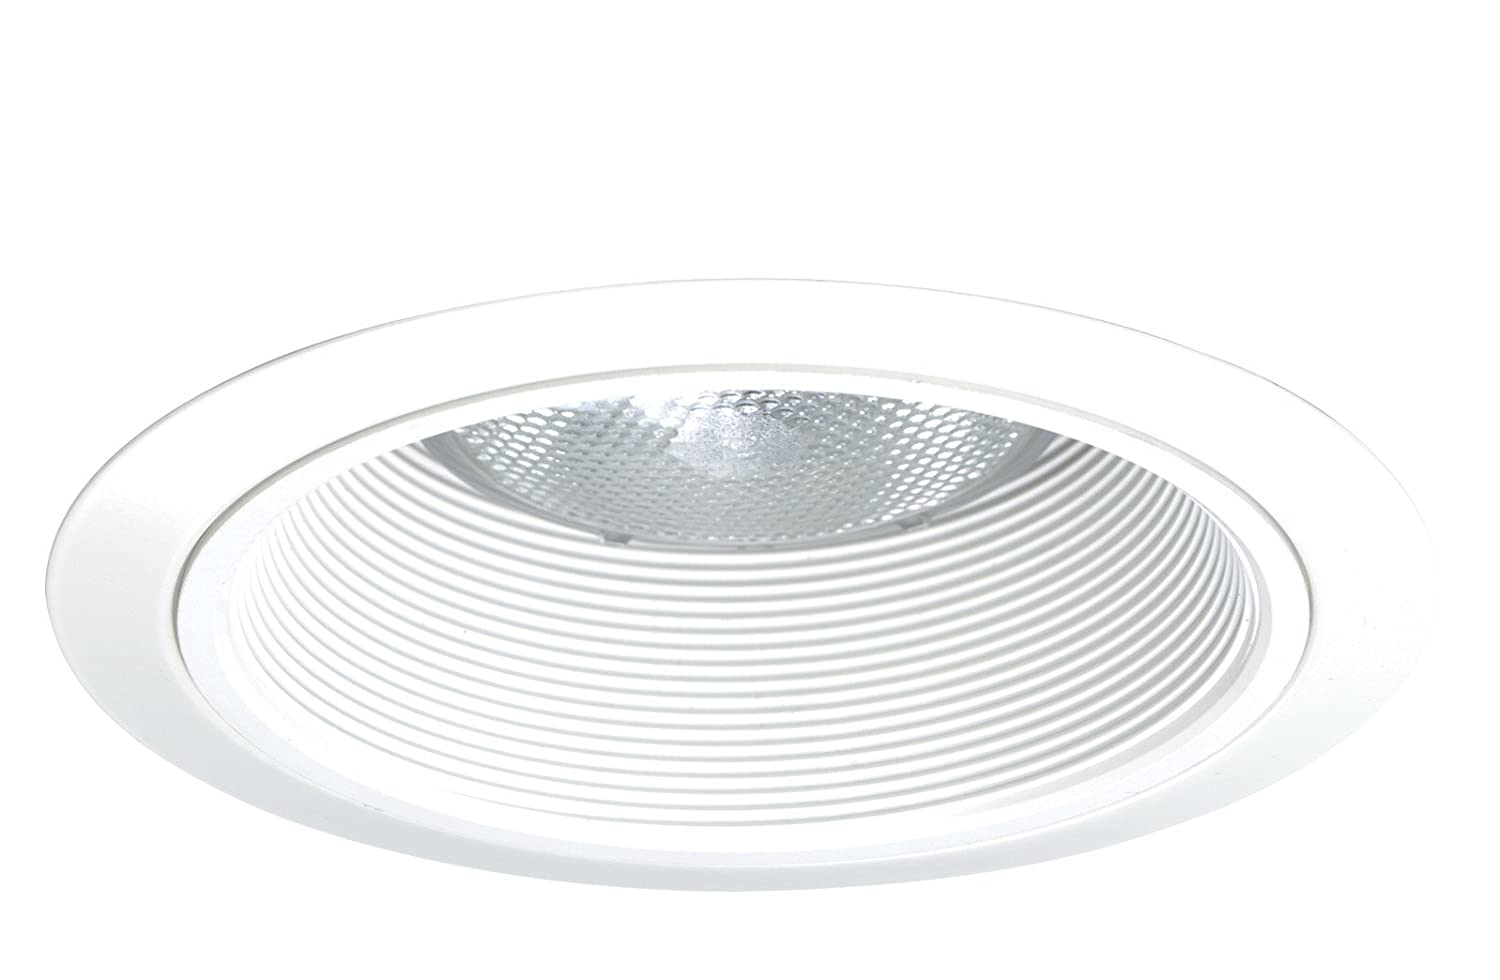 Juno Lighting 24W-WH 6-Inch Tapered Downlight Baffle White with White Trim - Close To Ceiling Light Fixtures - Amazon.com  sc 1 st  Amazon.com & Juno Lighting 24W-WH 6-Inch Tapered Downlight Baffle White with ...